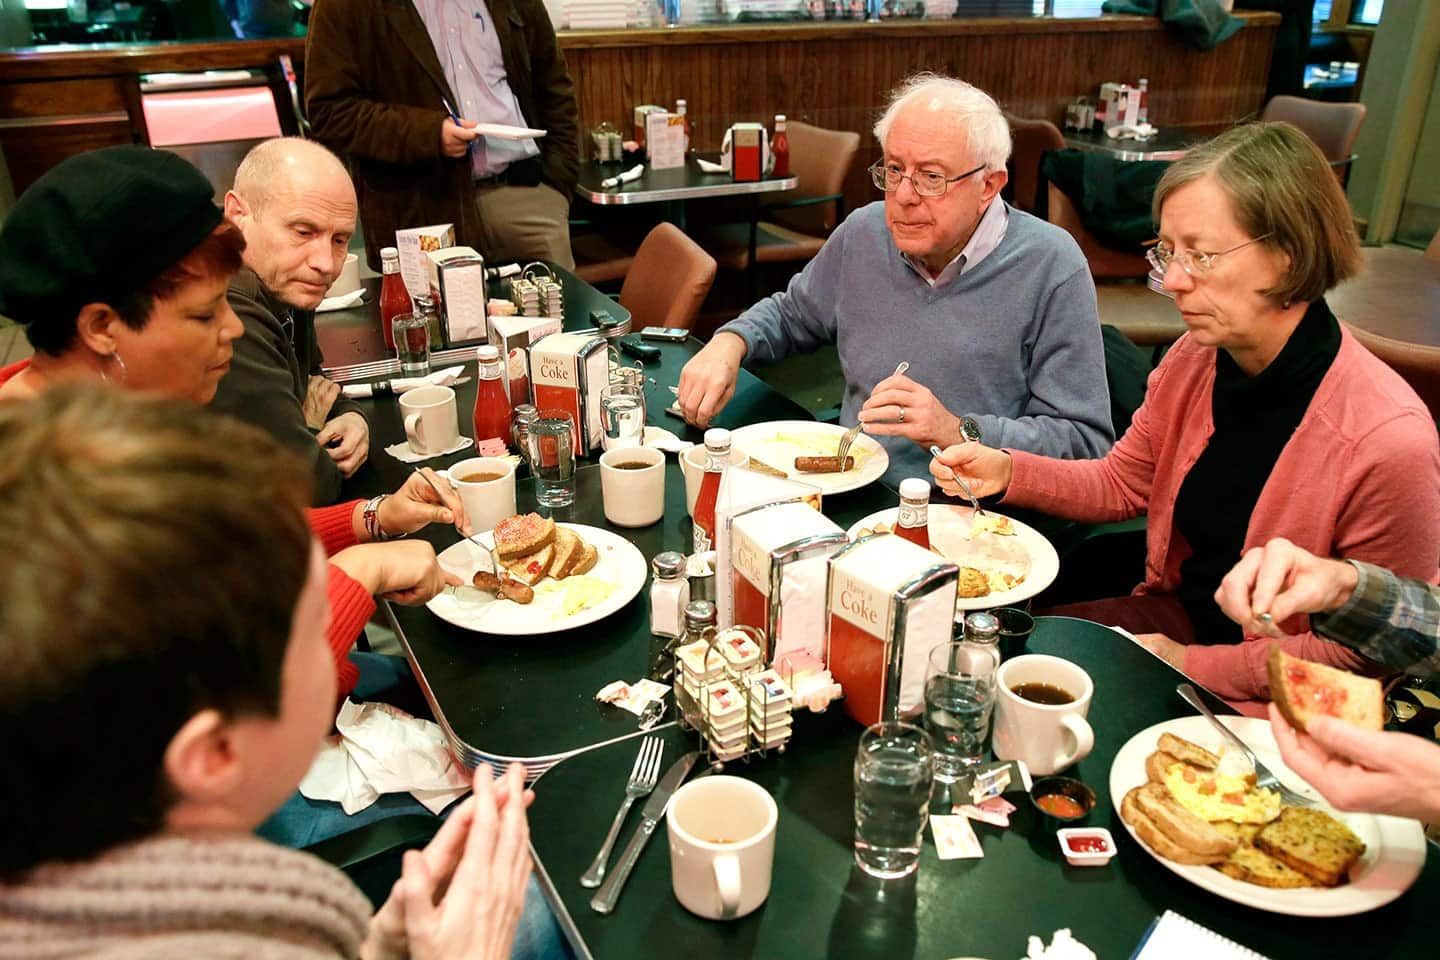 Upstate NY Eatery Devotes Sandwiches to Bernie Sanders, Hillary Clinton